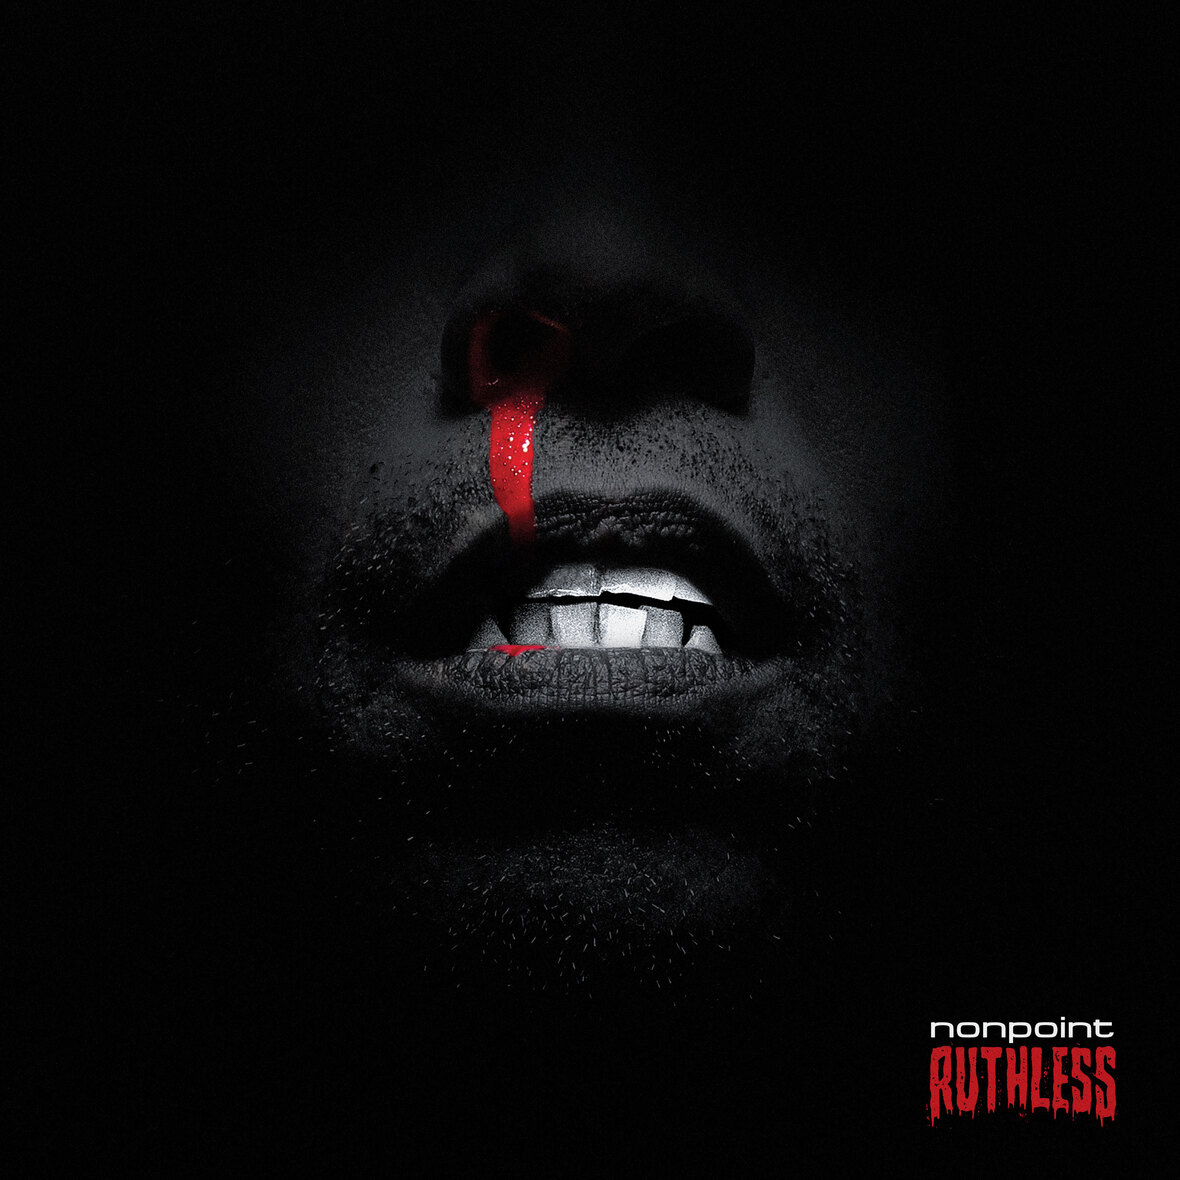 Nonpoint-Ruthless-AlbumCover-withtext